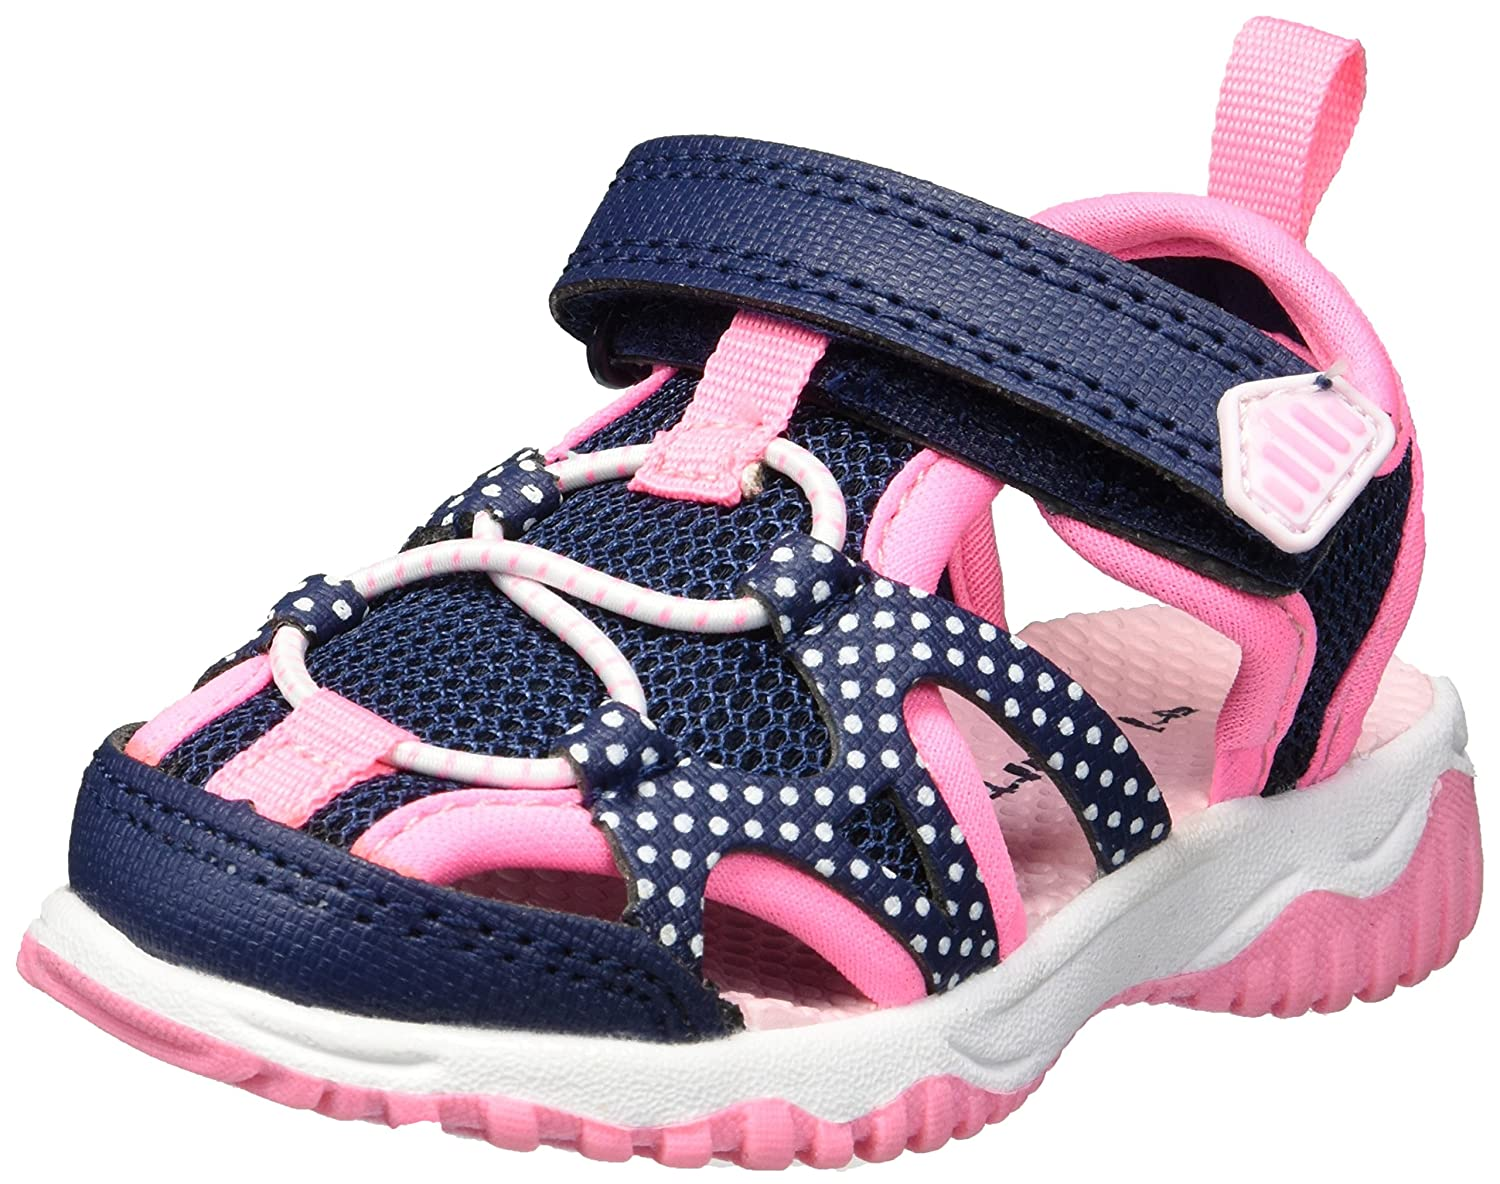 Carter's Kids Zyntec Boy's and Girl's Athletic Sandal Sport Carter's -